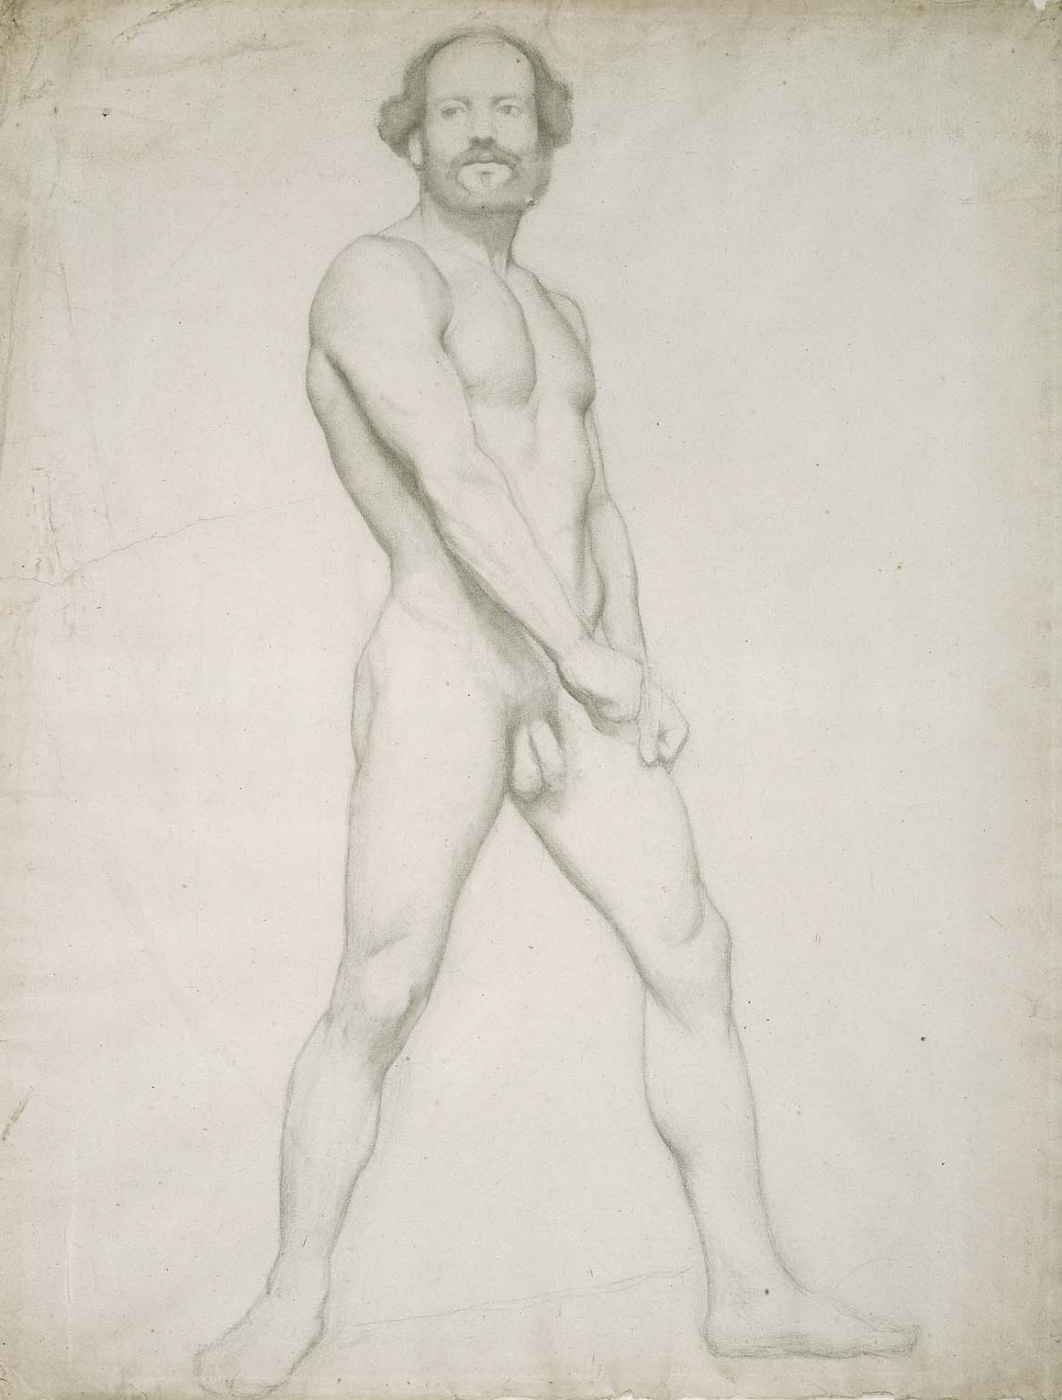 Edgar Degas. A naked man. Sketch